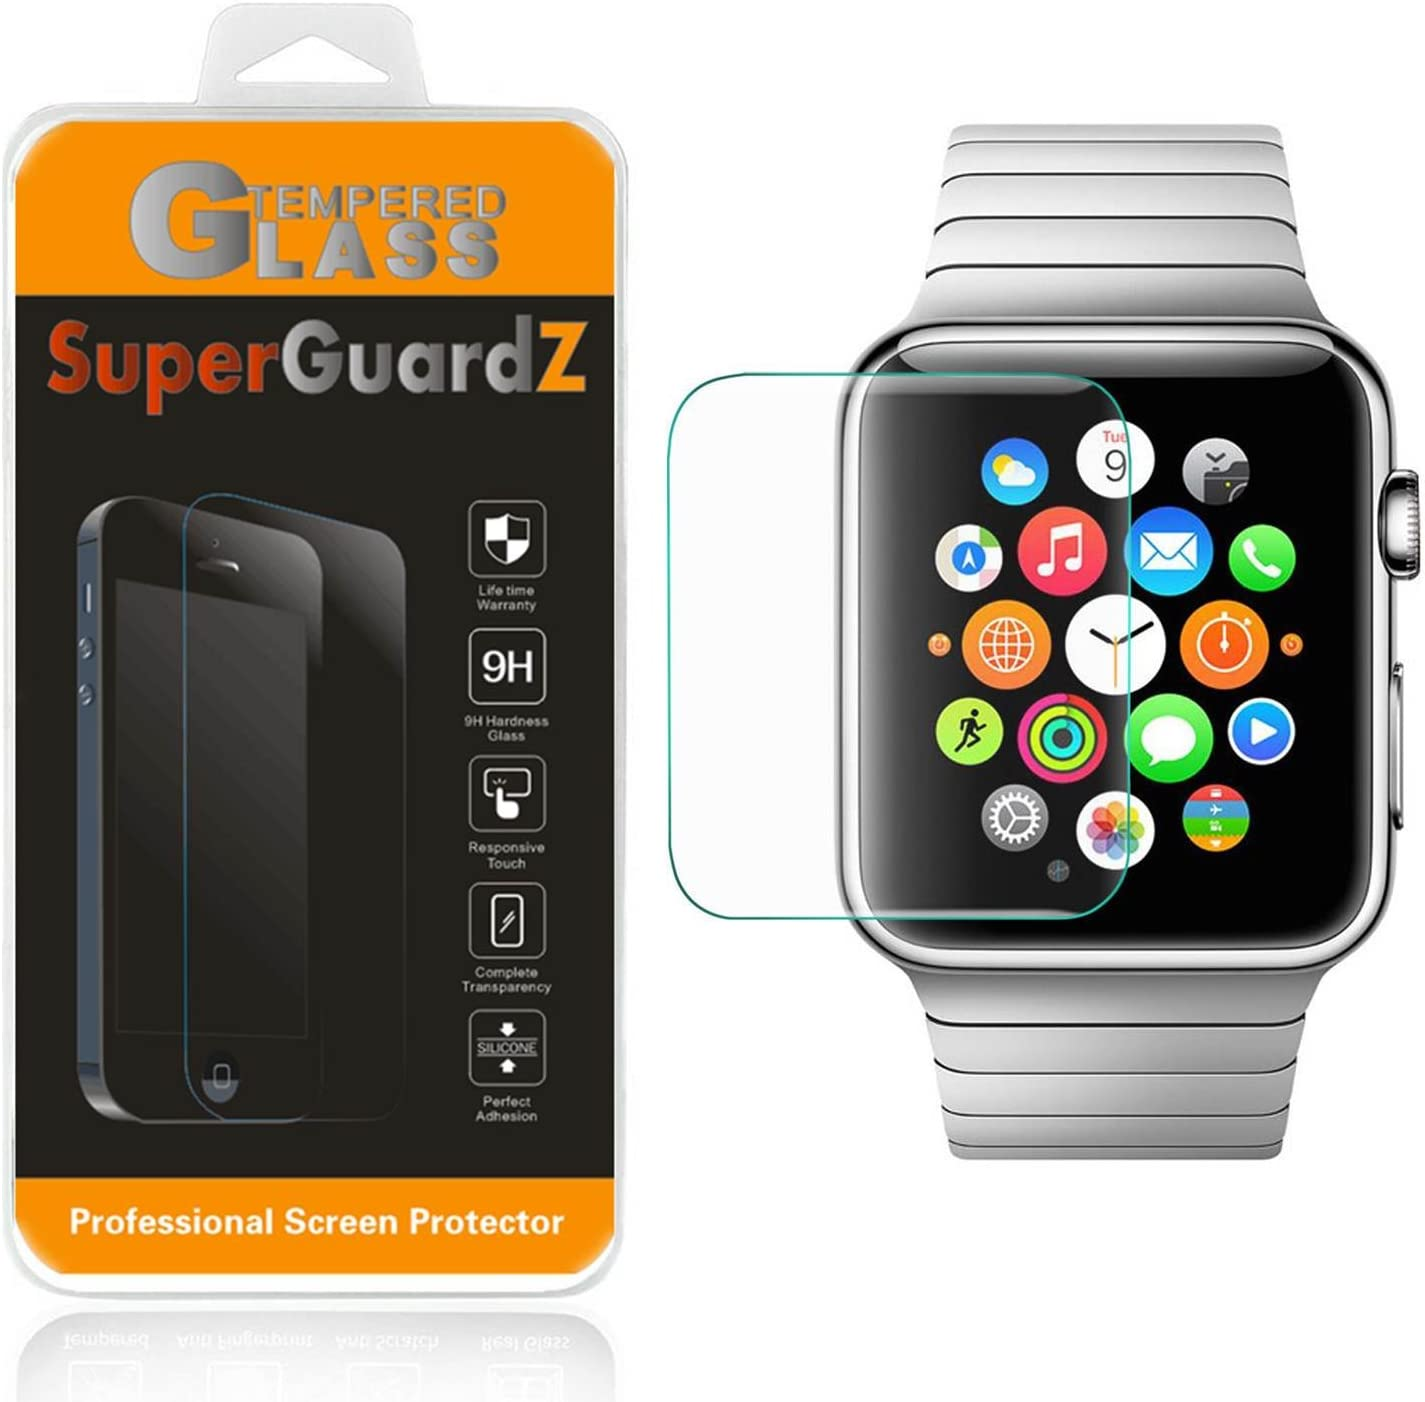 [2-Pack] For Apple Watch 38 mm (1st Generation) - SuperGuardZ Tempered Glass Screen Protector, 9H, 0.3mm, 2.5D Round Edge, Anti-Scratch, Anti-Bubble, Shatterproof